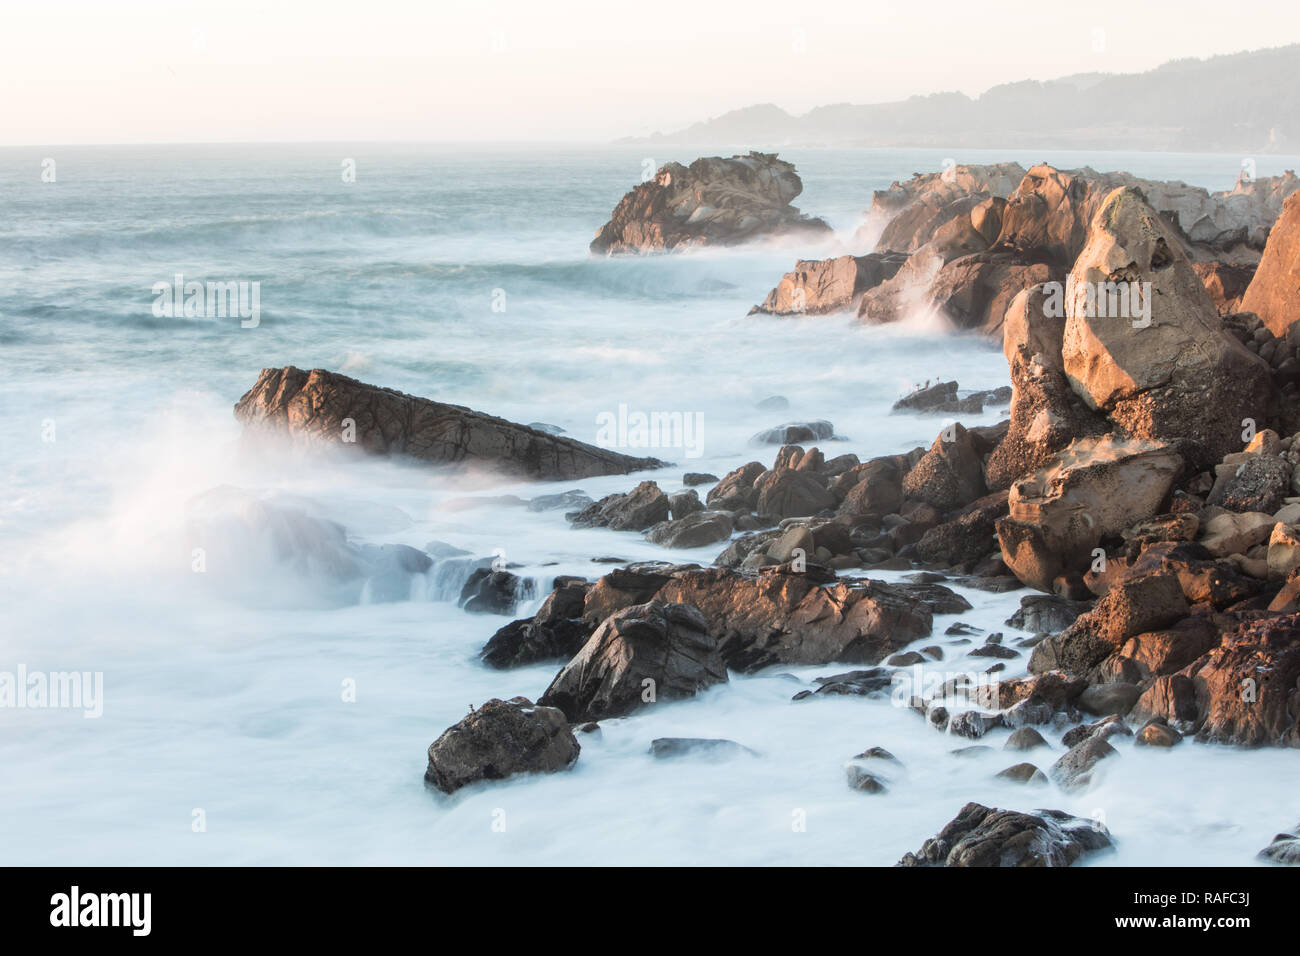 The cold waters of the Pacific Ocean wash against the scenic